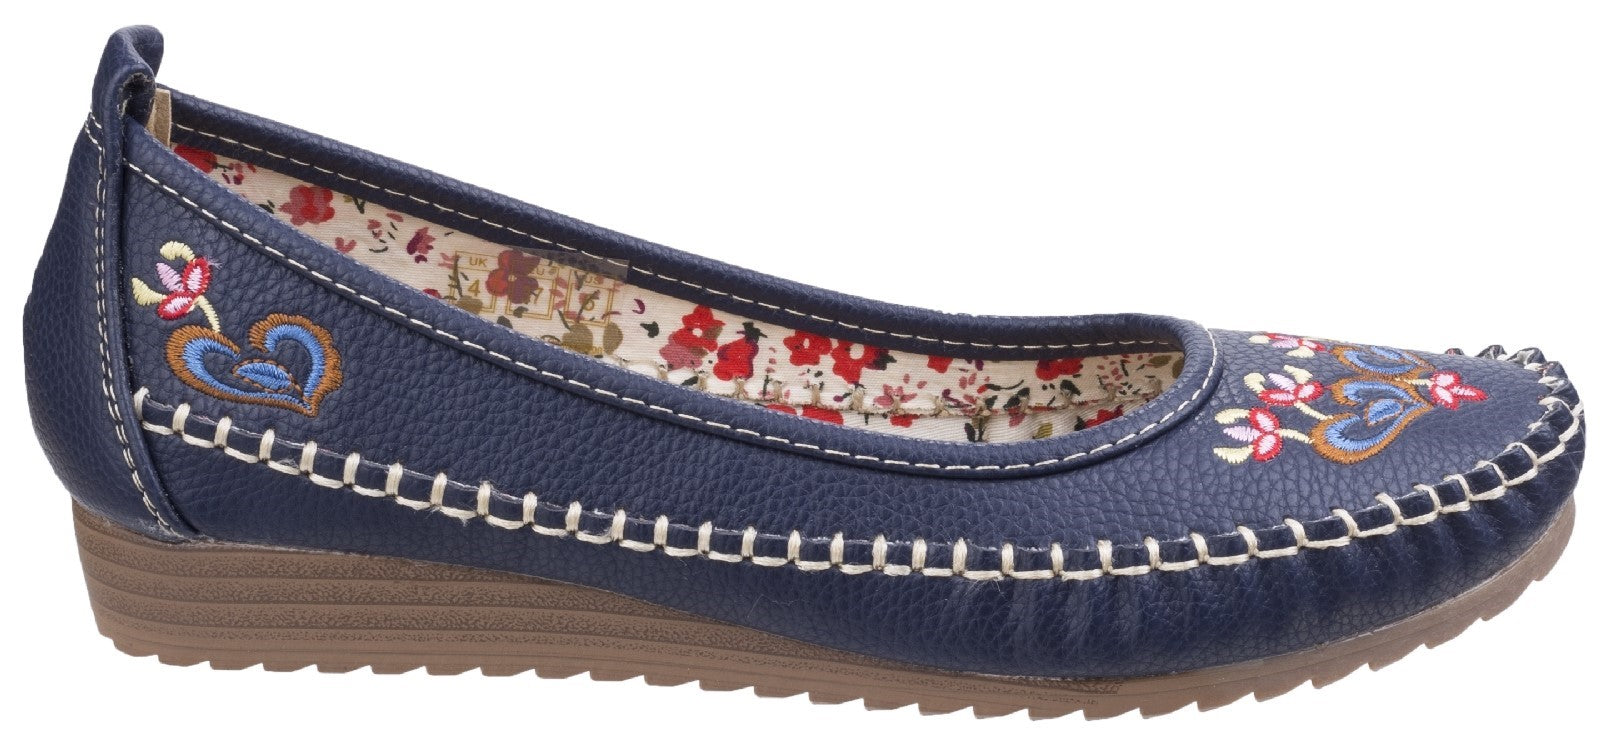 Fleet & Foster Women's Algarve Moccasin Red 26303-43892